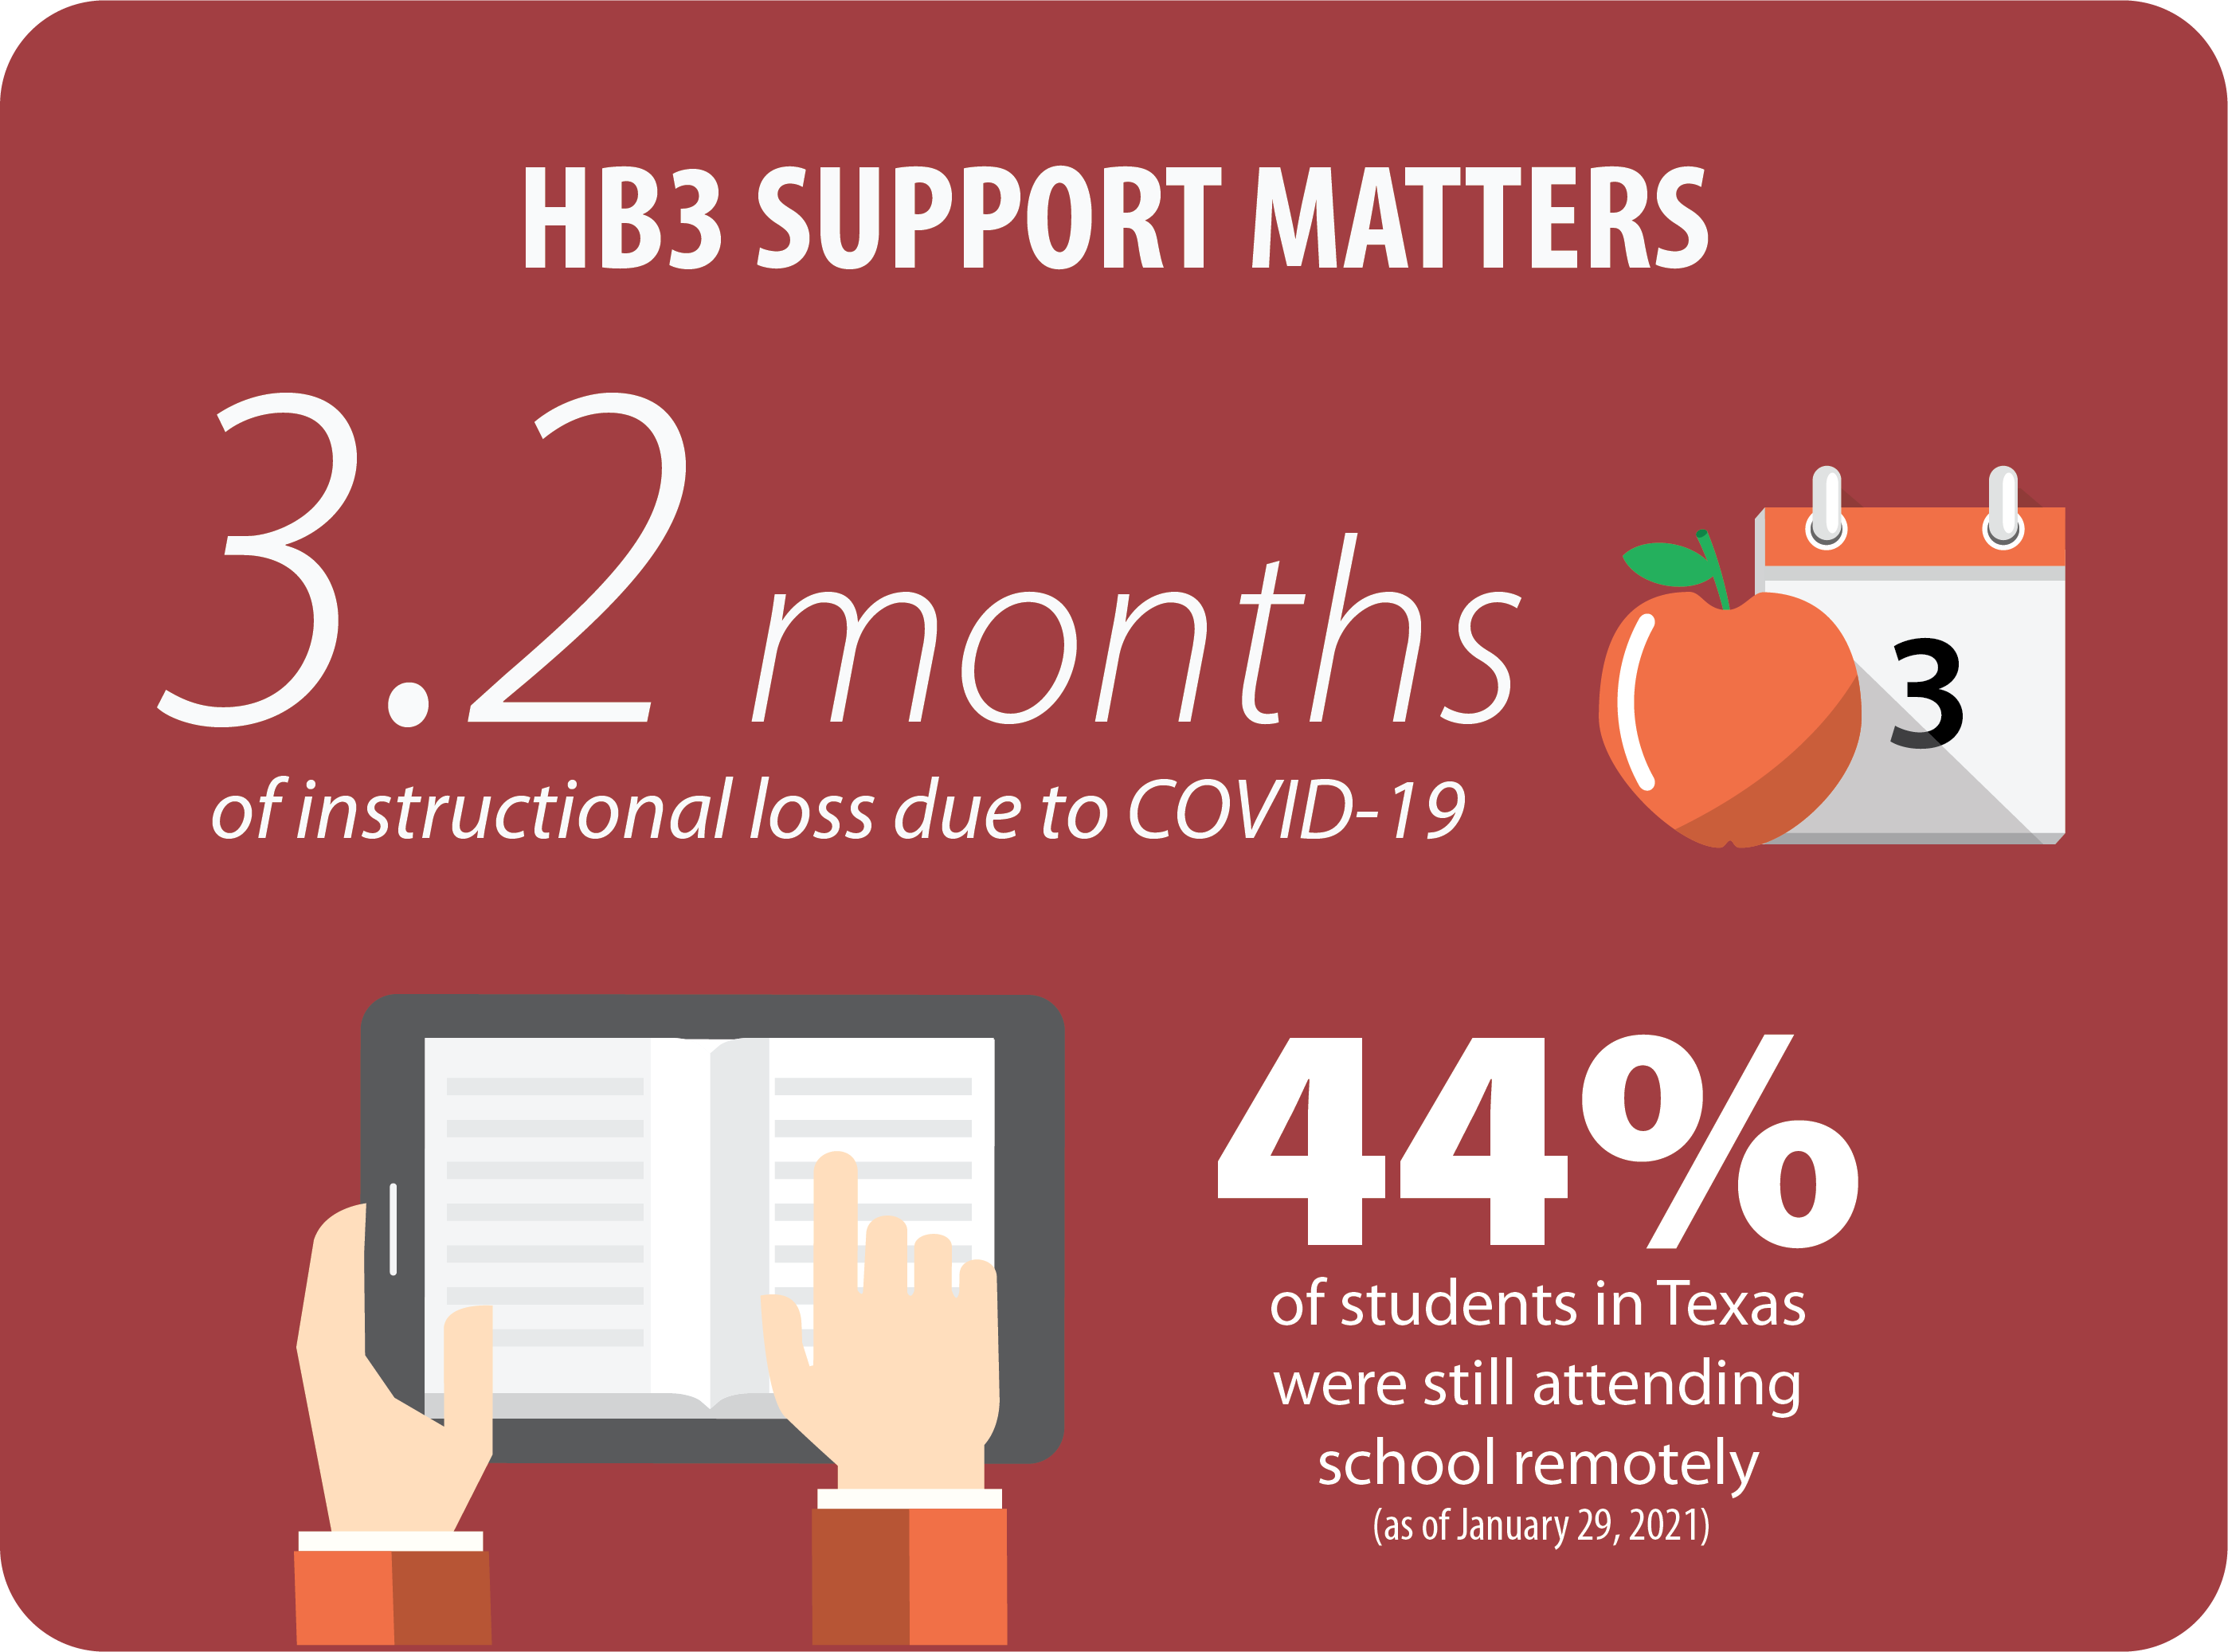 3.2 months of instructional loss due to COVID-19, 44% of students in Texas were still attending school remotely as of January 29, 2021